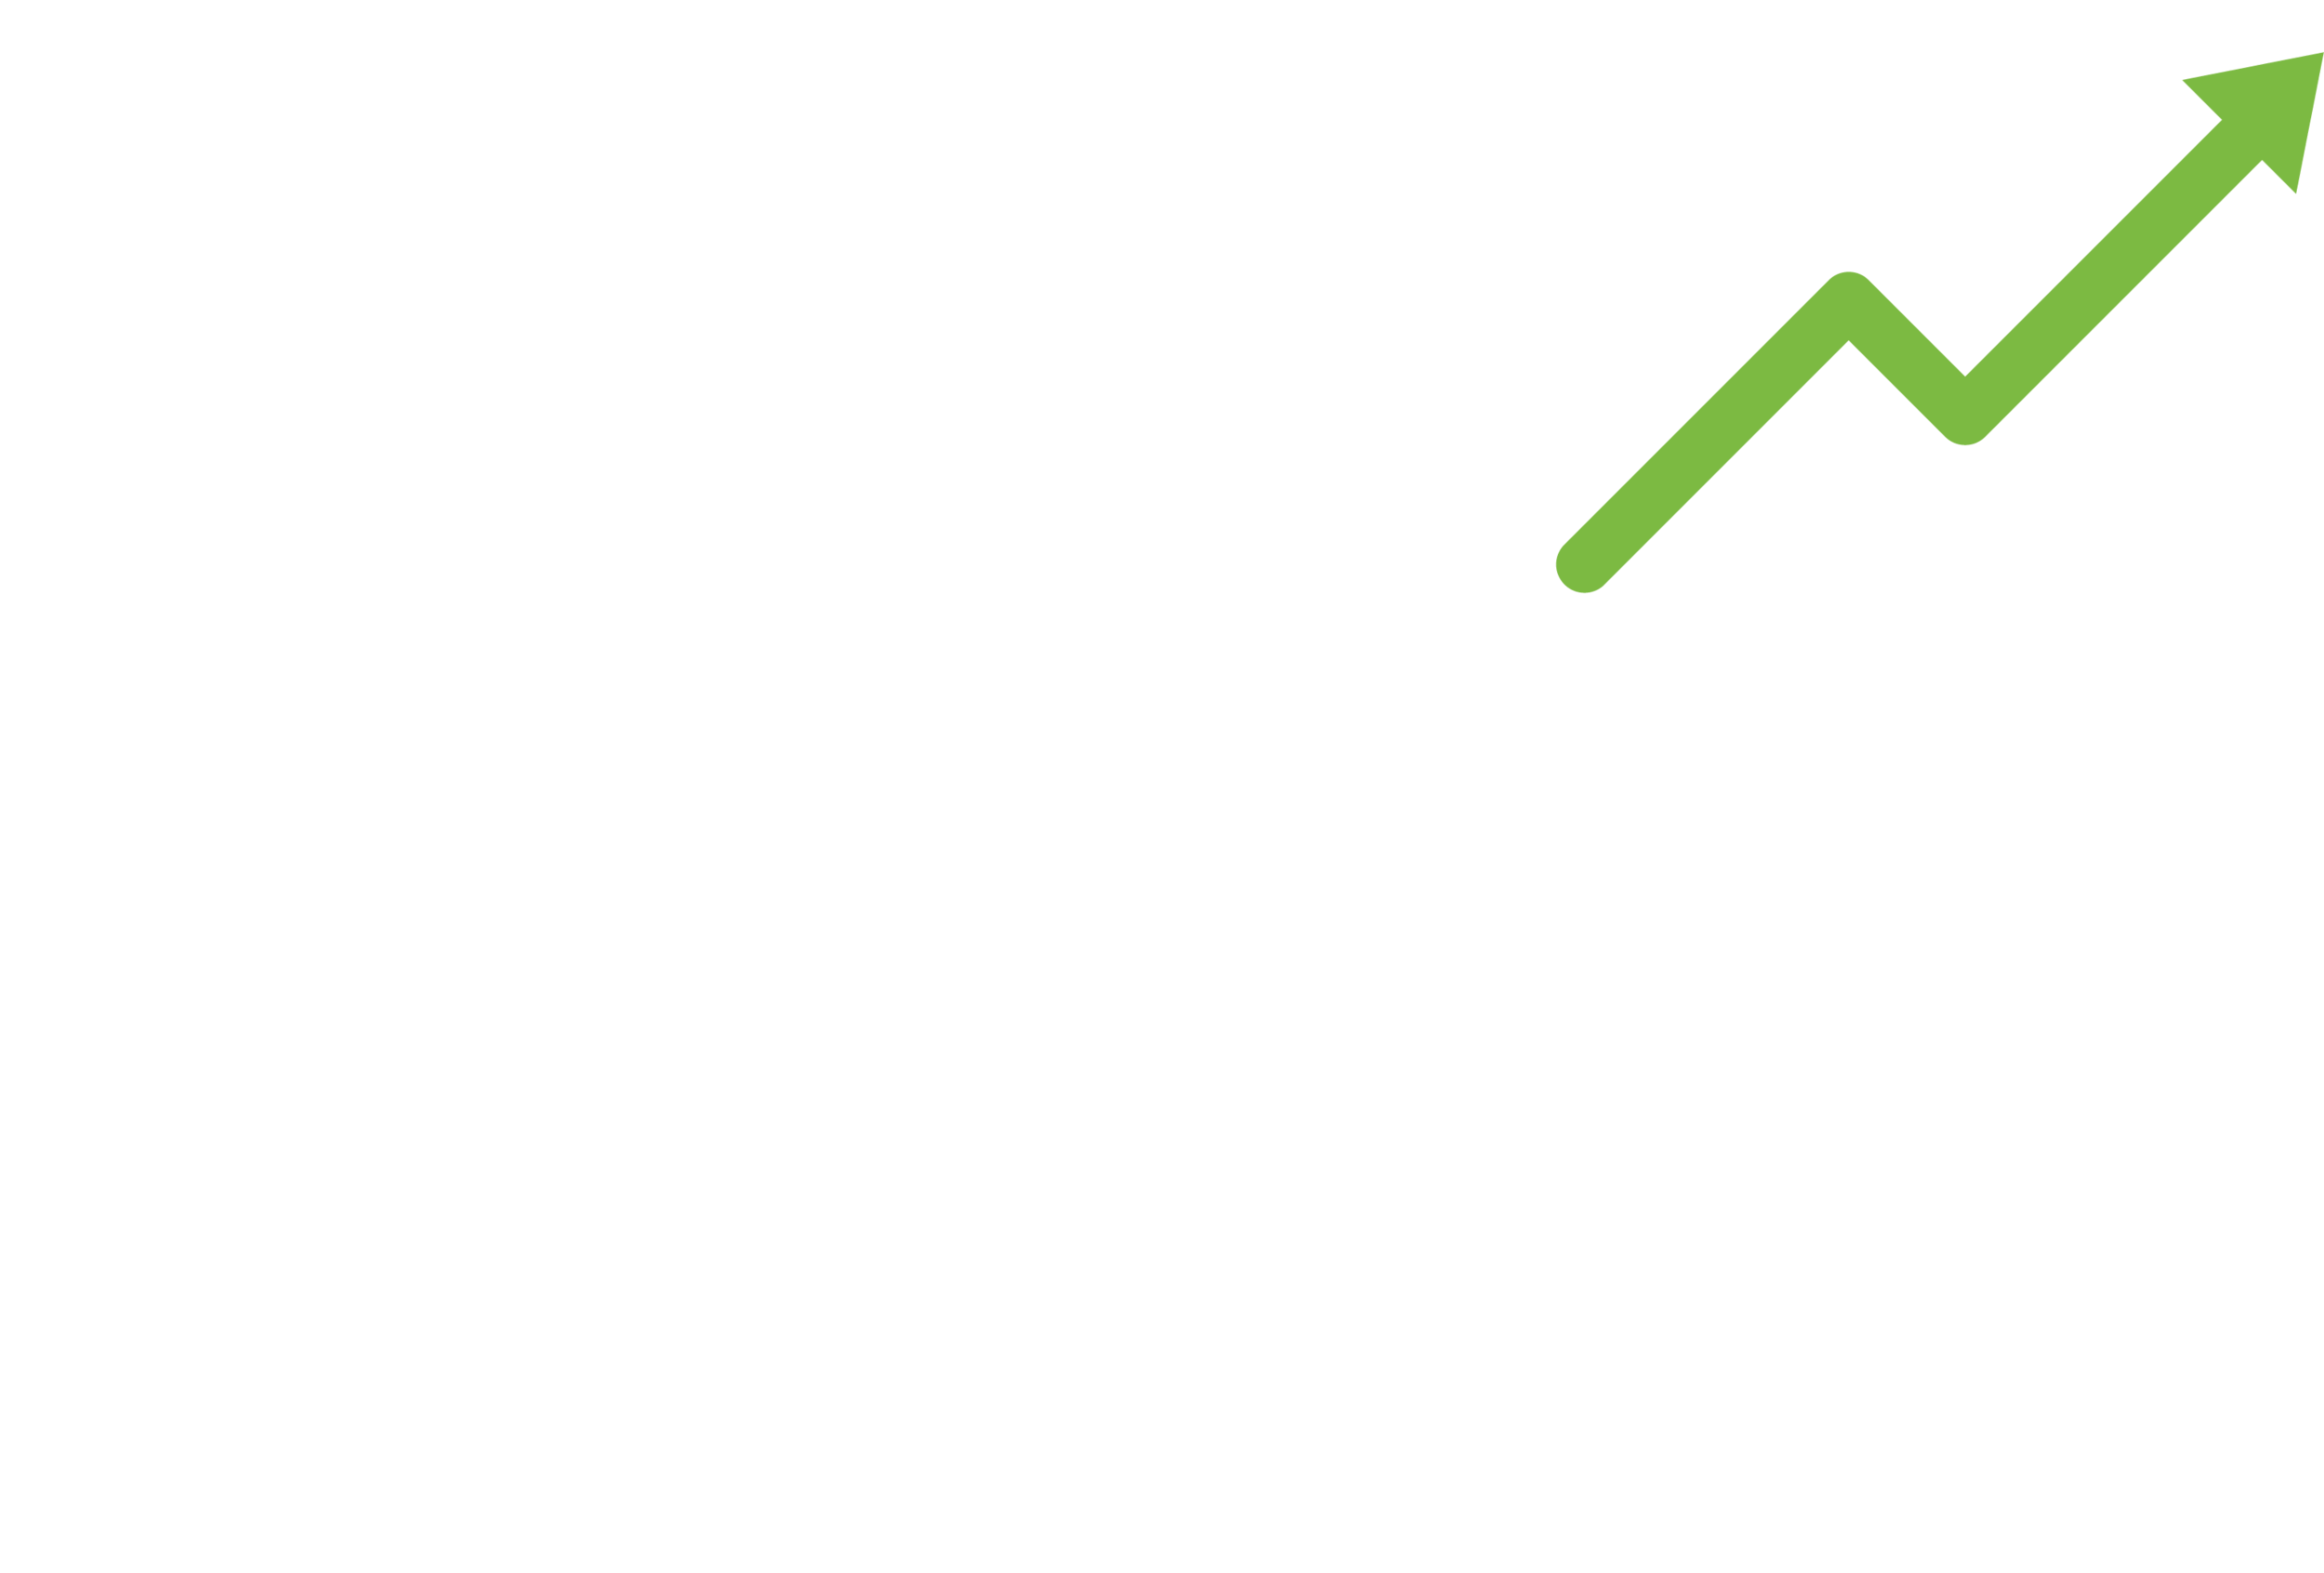 Replayz-REV.png